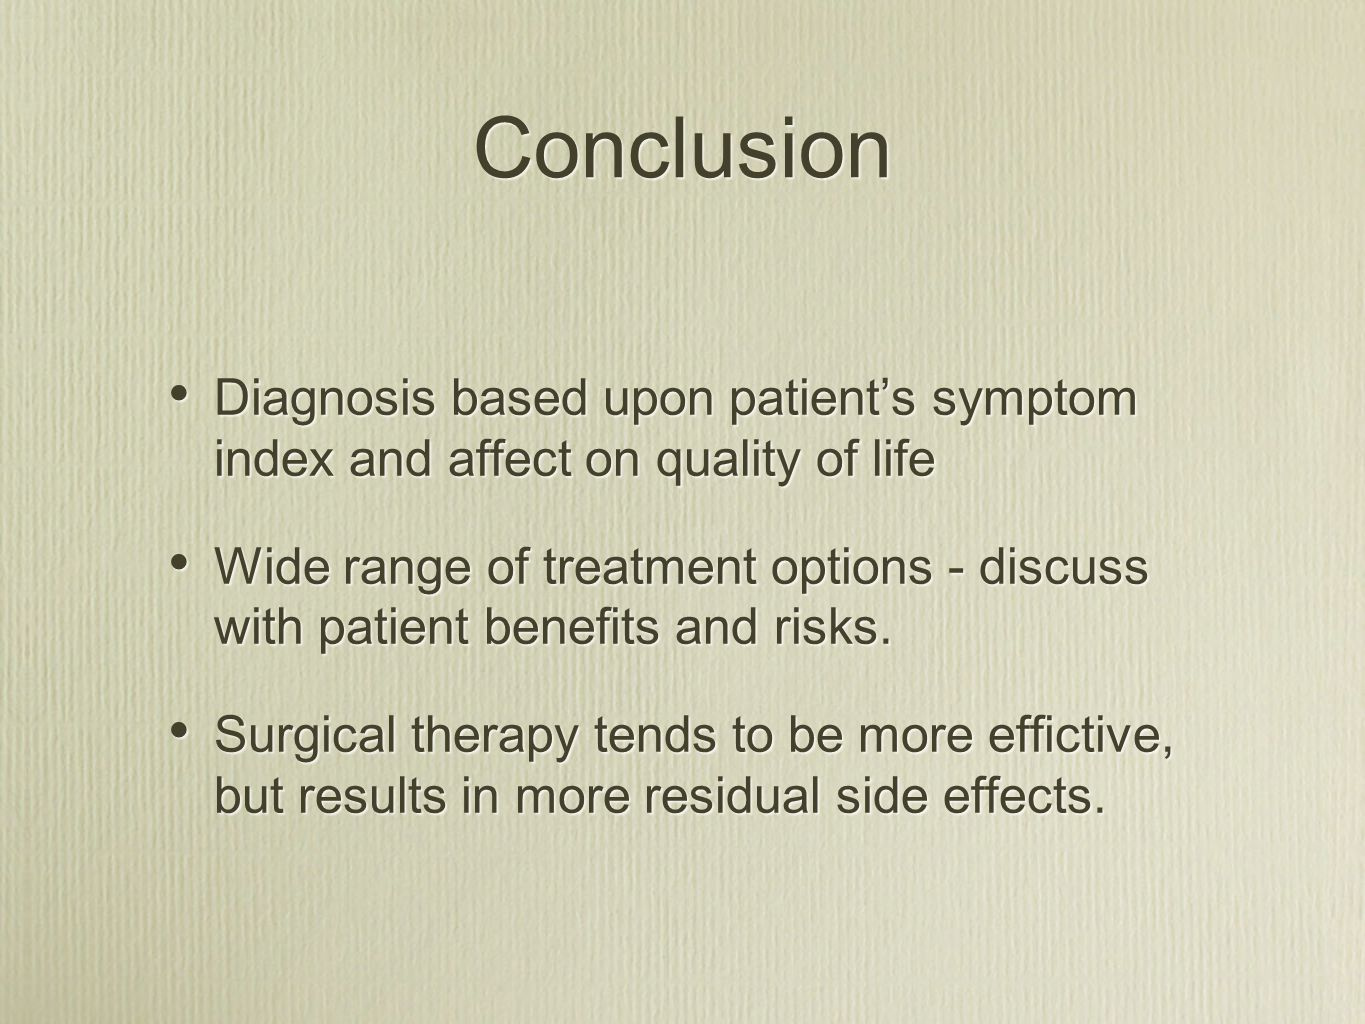 Conclusion Diagnosis based upon patient's symptom index and affect on quality of life.